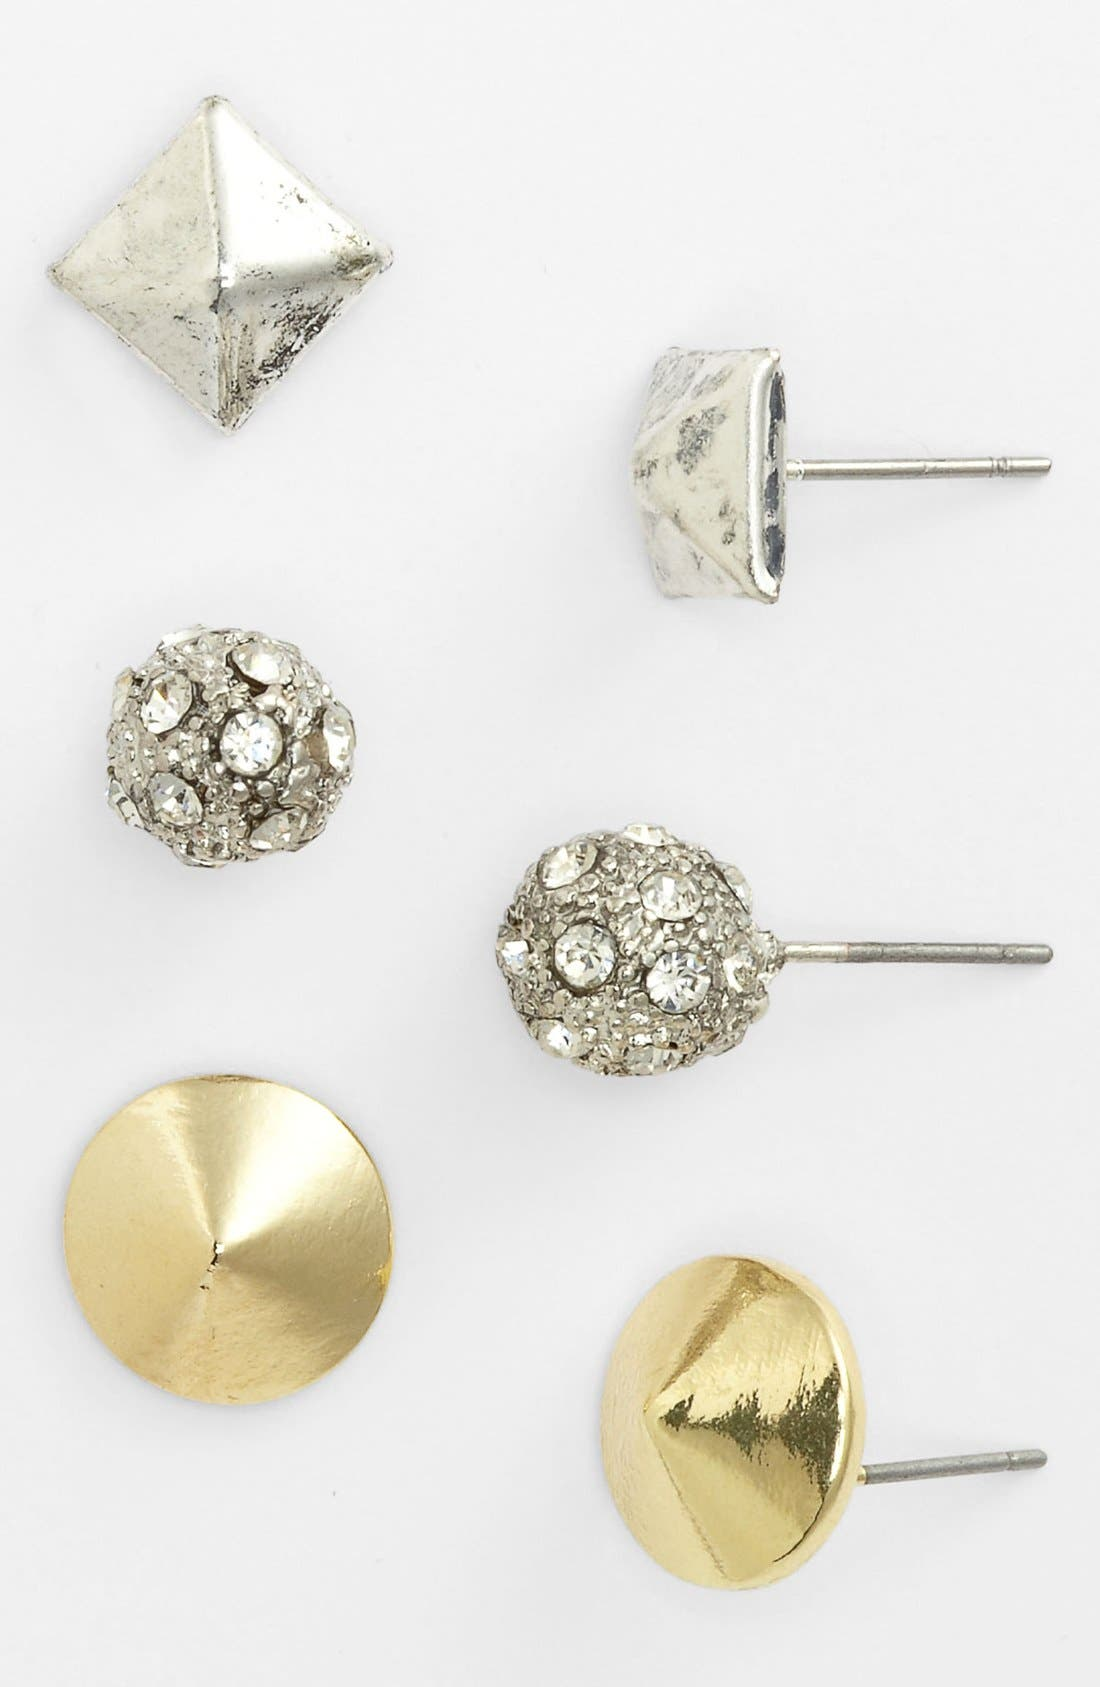 Alternate Image 1 Selected - Carole Stud Earrings (Set of 3)